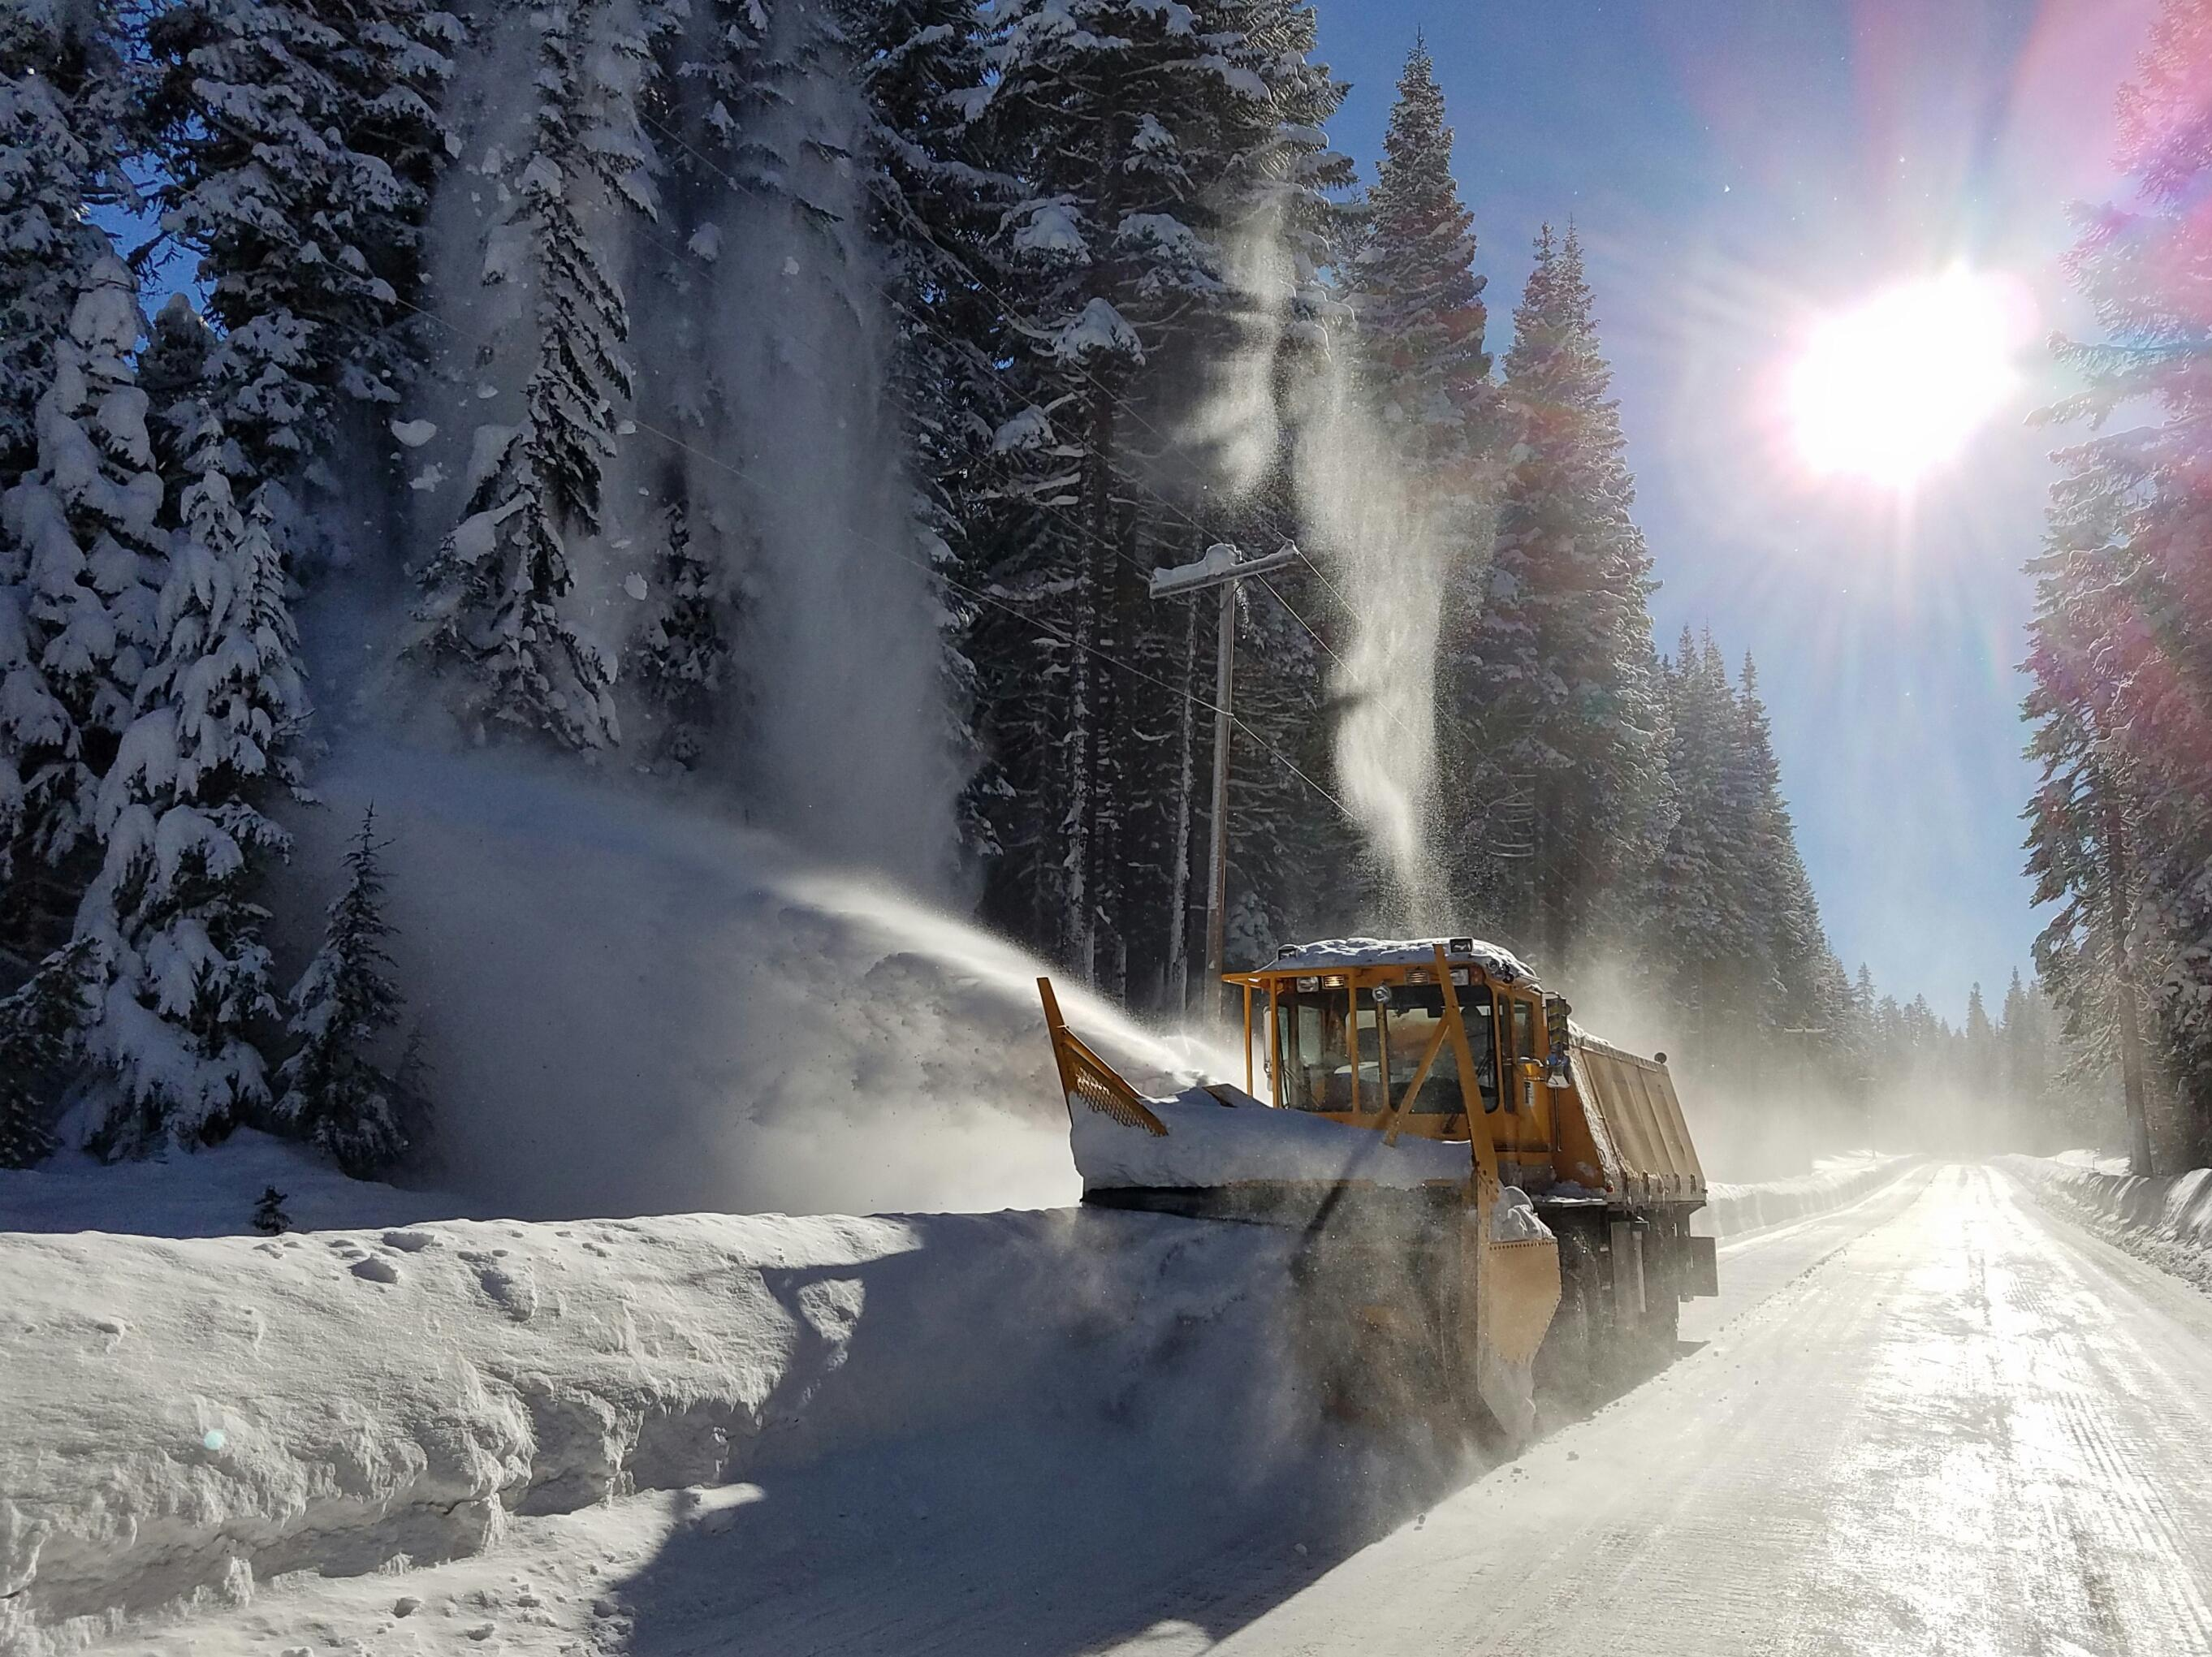 Plowing snow on Highway 138 (Dan Metz, ODOT/CC by 2.0)